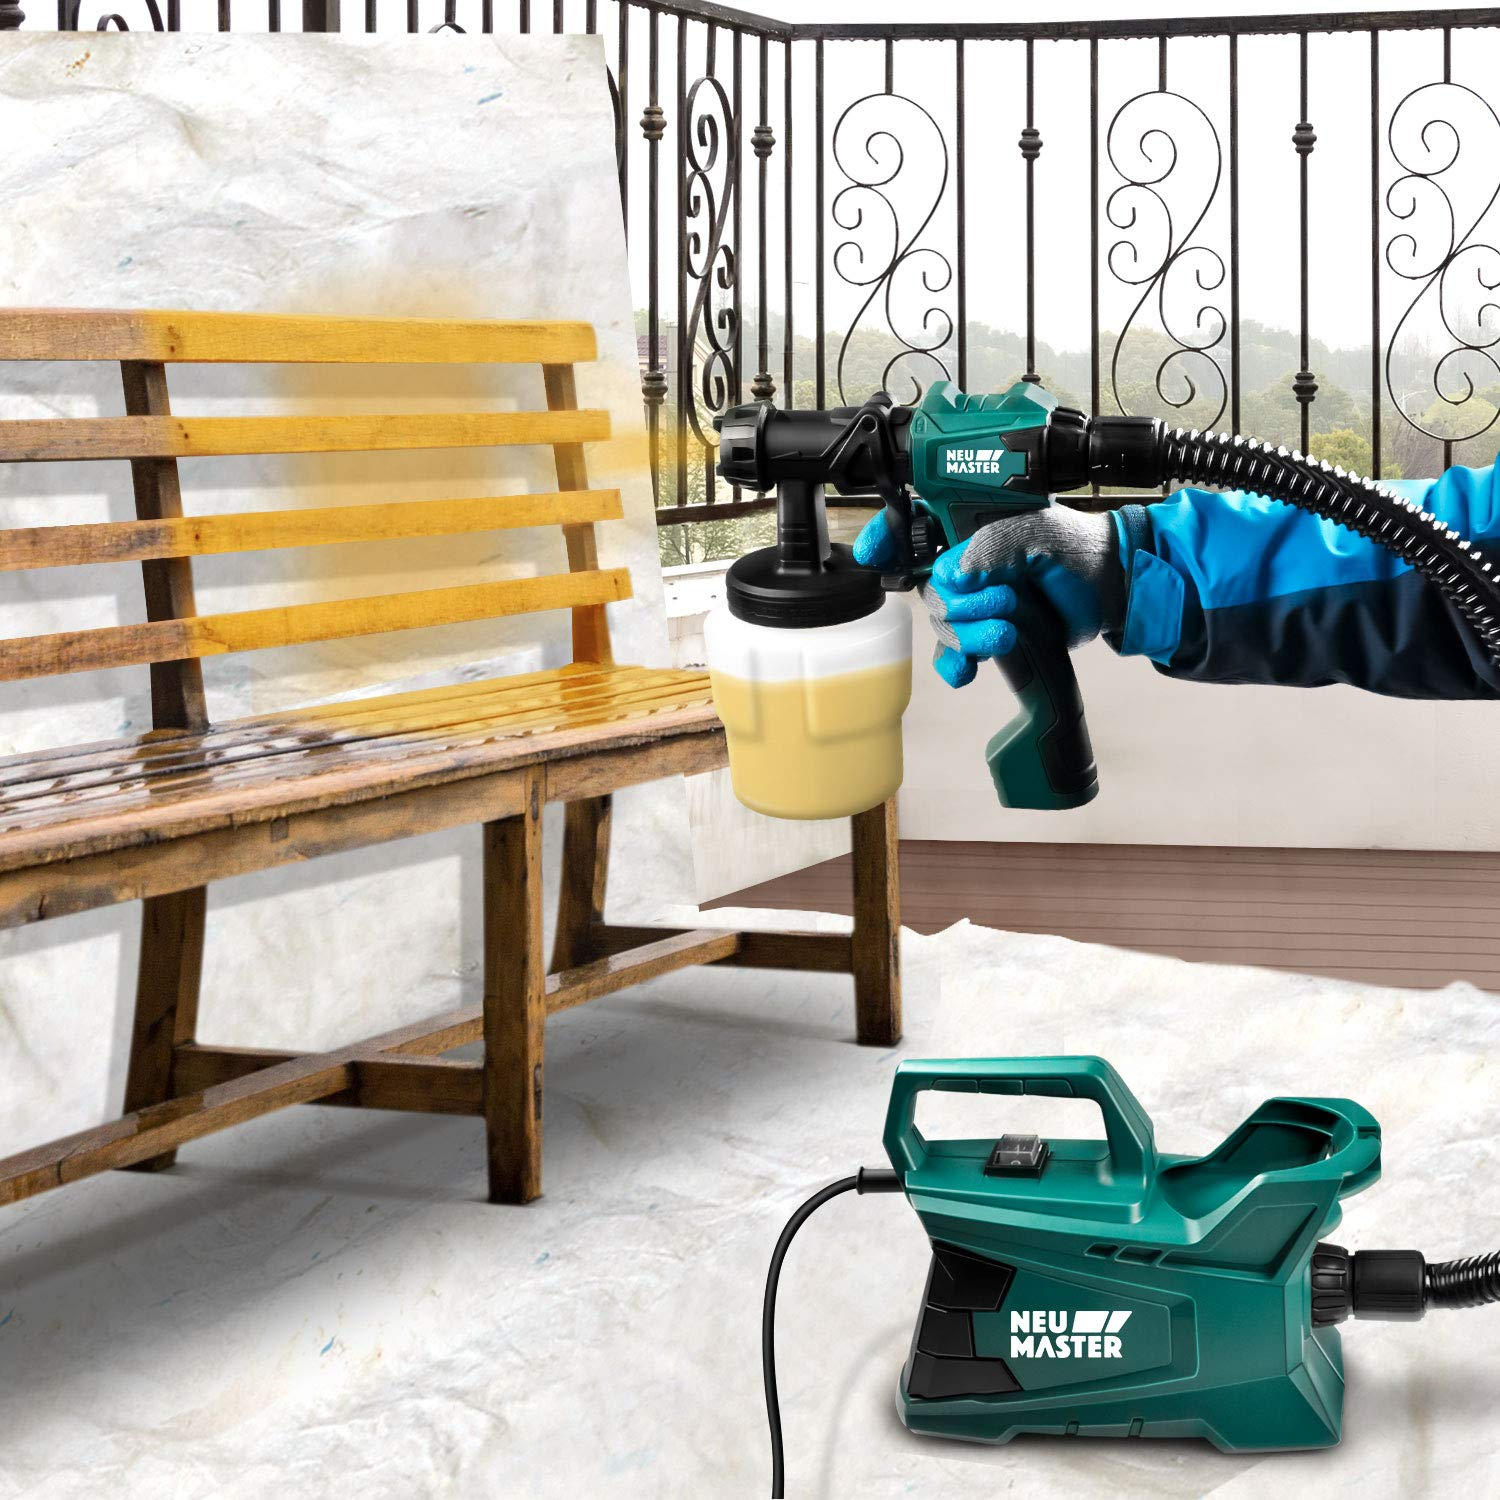 Remarkable Top 10 Best Electric Hvlp Spray Guns In 2019 Reviews Pdpeps Interior Chair Design Pdpepsorg